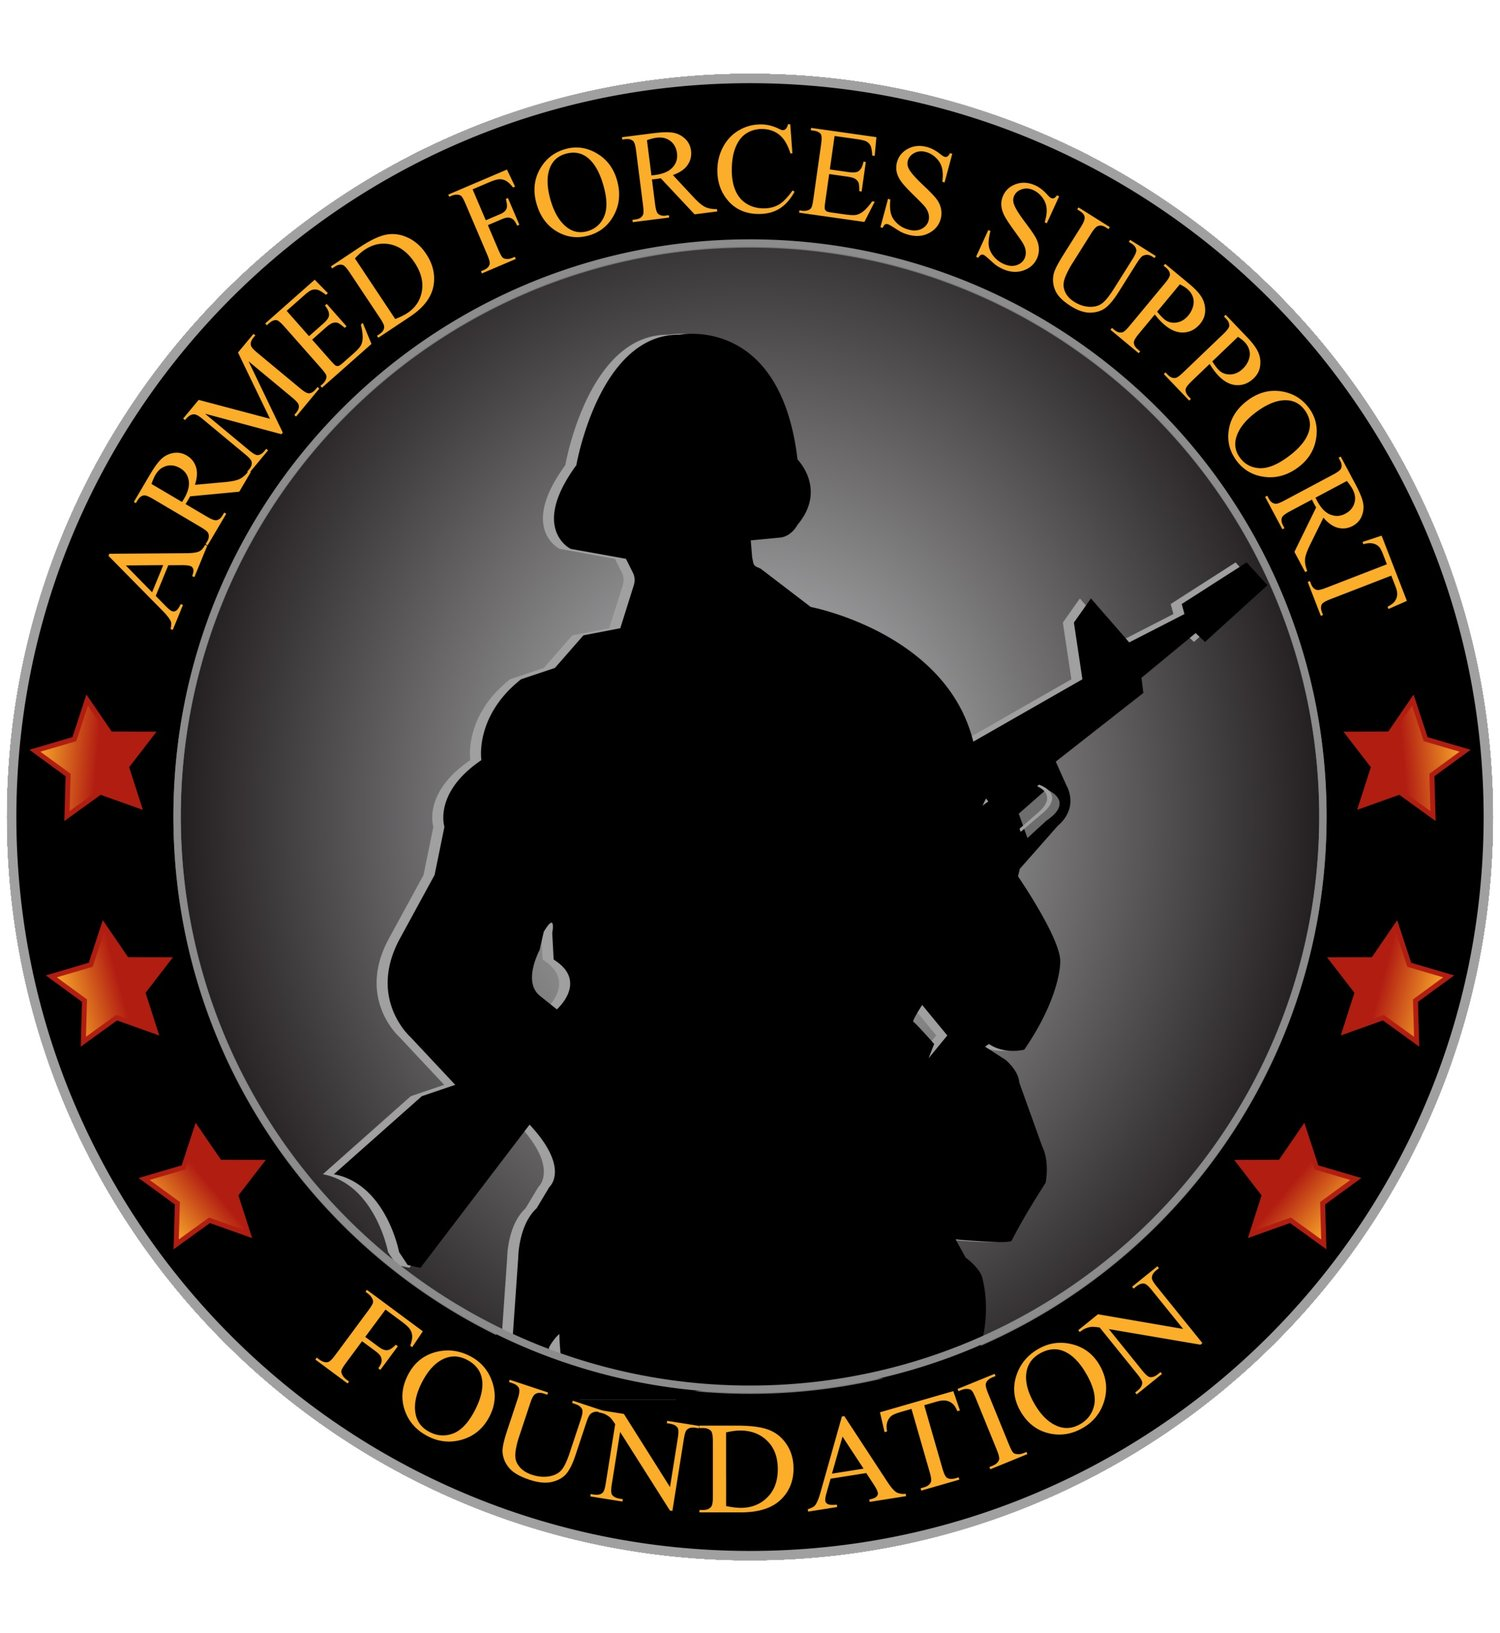 Armed Forces Support Foundation